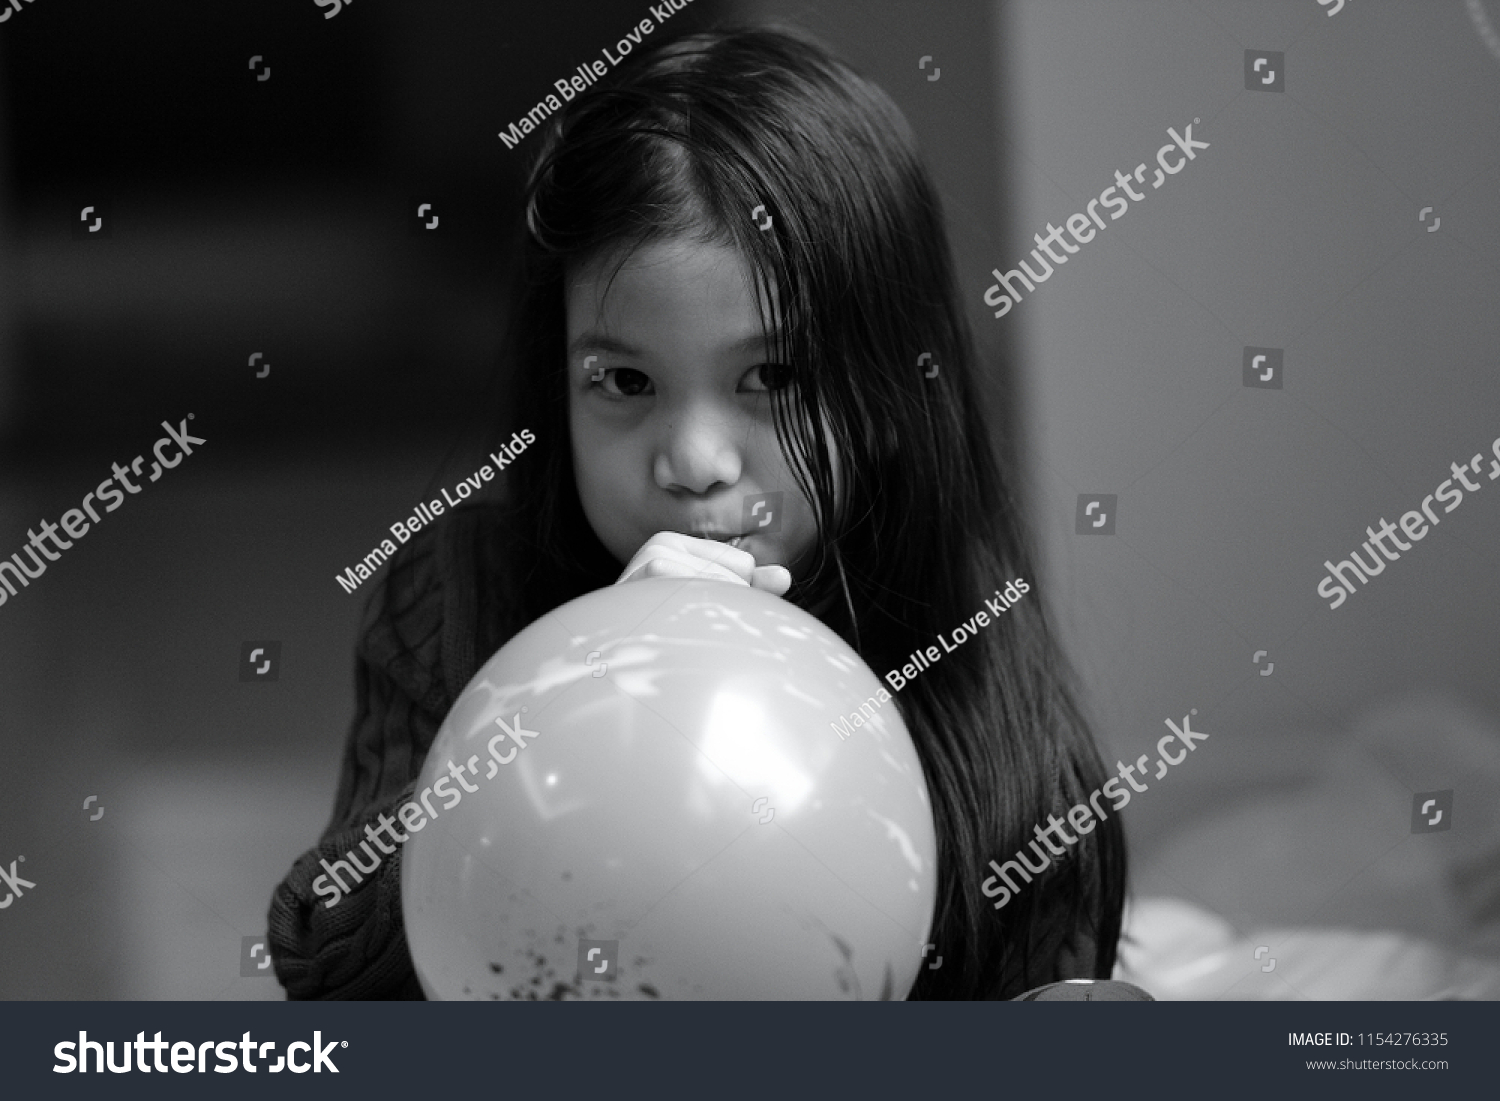 Black and white image of 6 years old Asian girl Blowing balloons.Girl look  happy